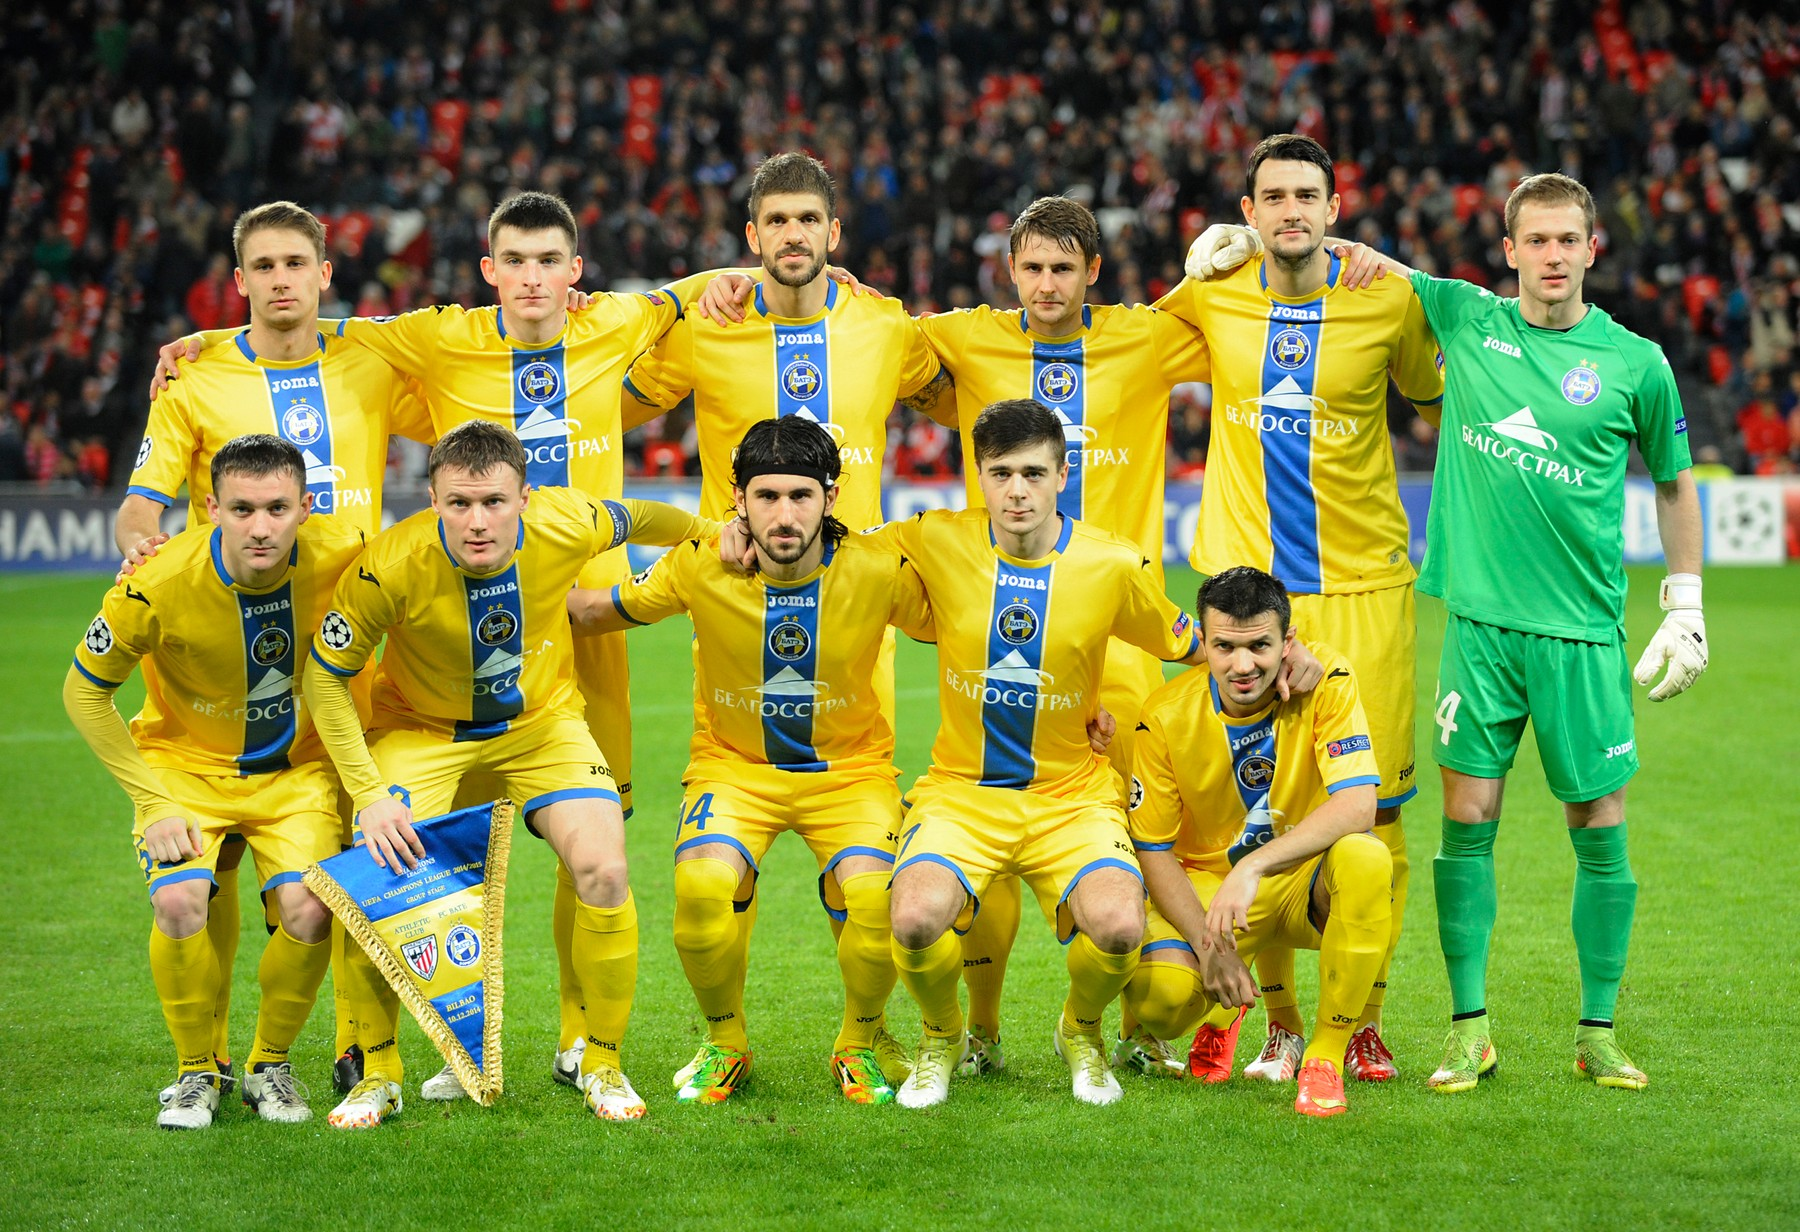 BATE Borisov – Belarus' Football Factory